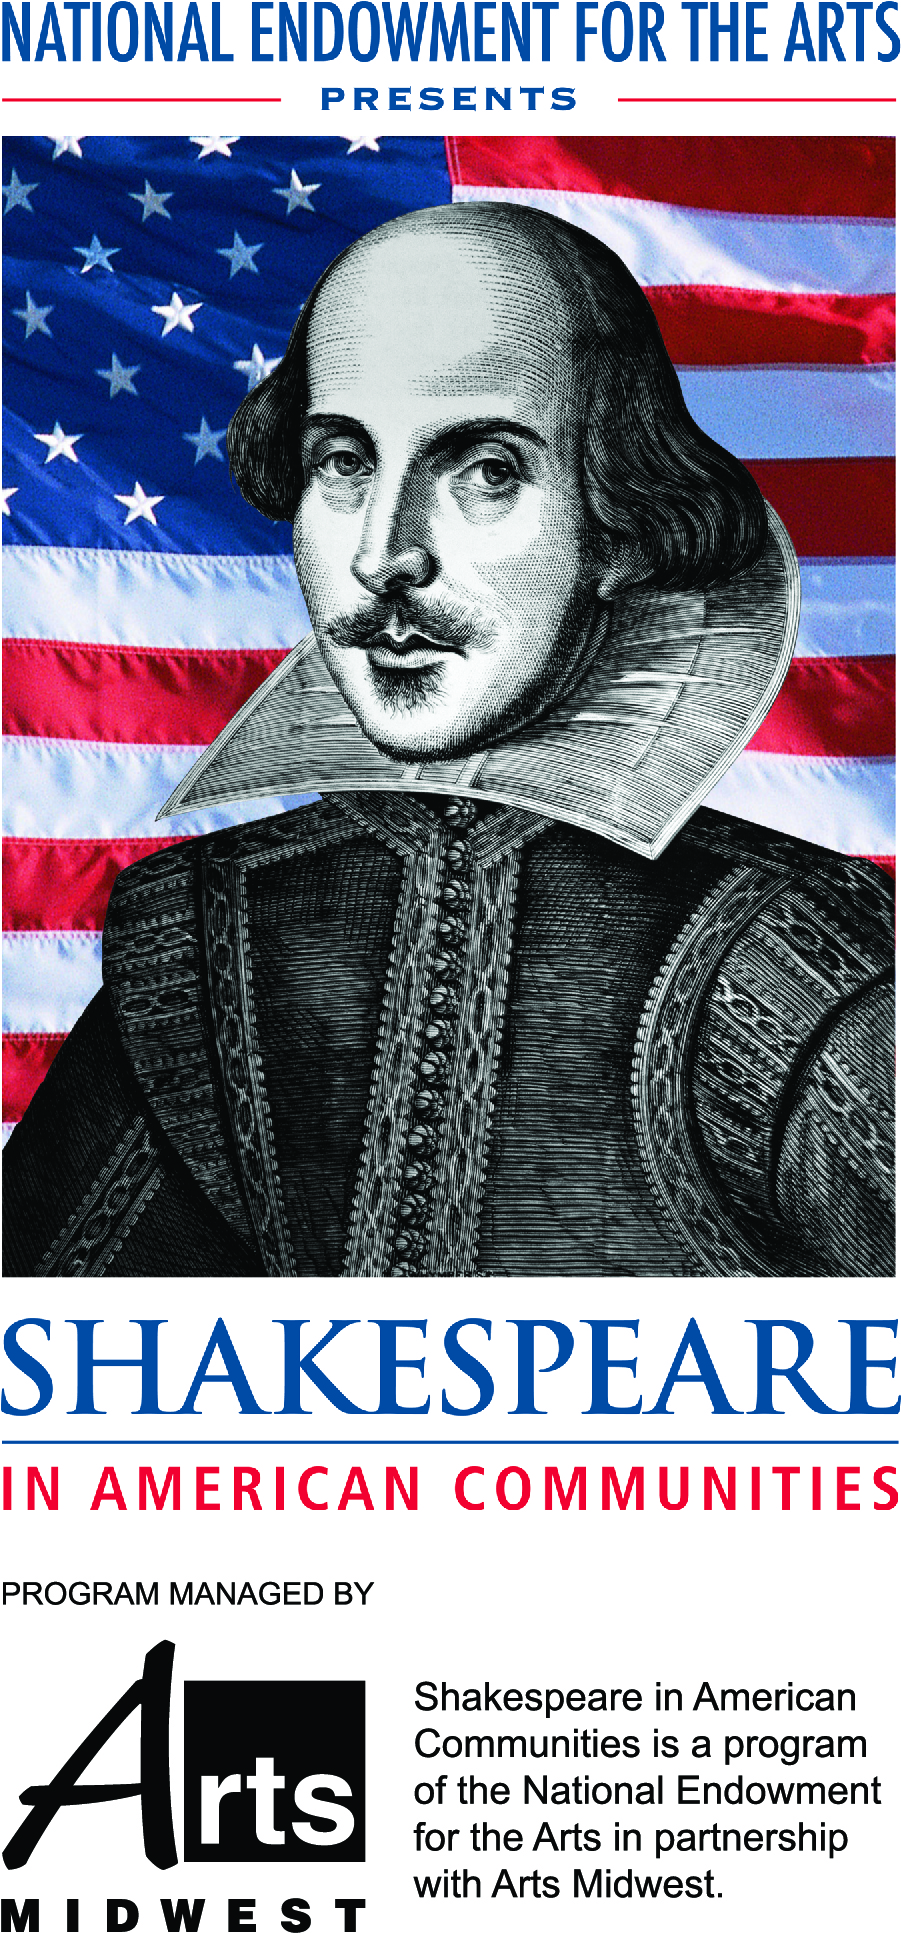 National Endowment for the Arts Presents: Shakespeare in American Communities. Program managed by Arts Midwest.